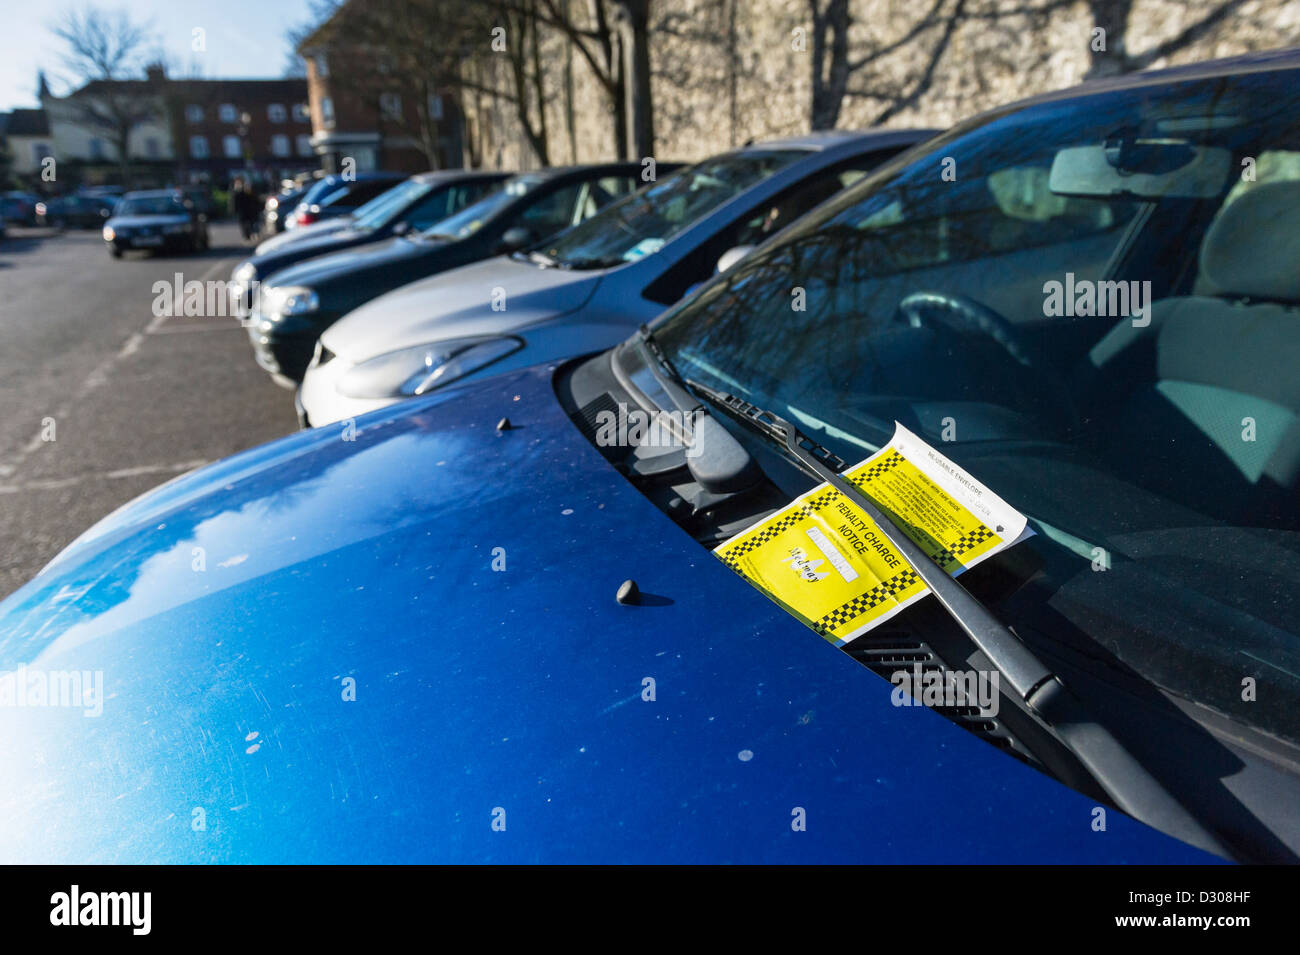 A parking ticket on the windscreen of a vehicle in a car park. - Stock Image